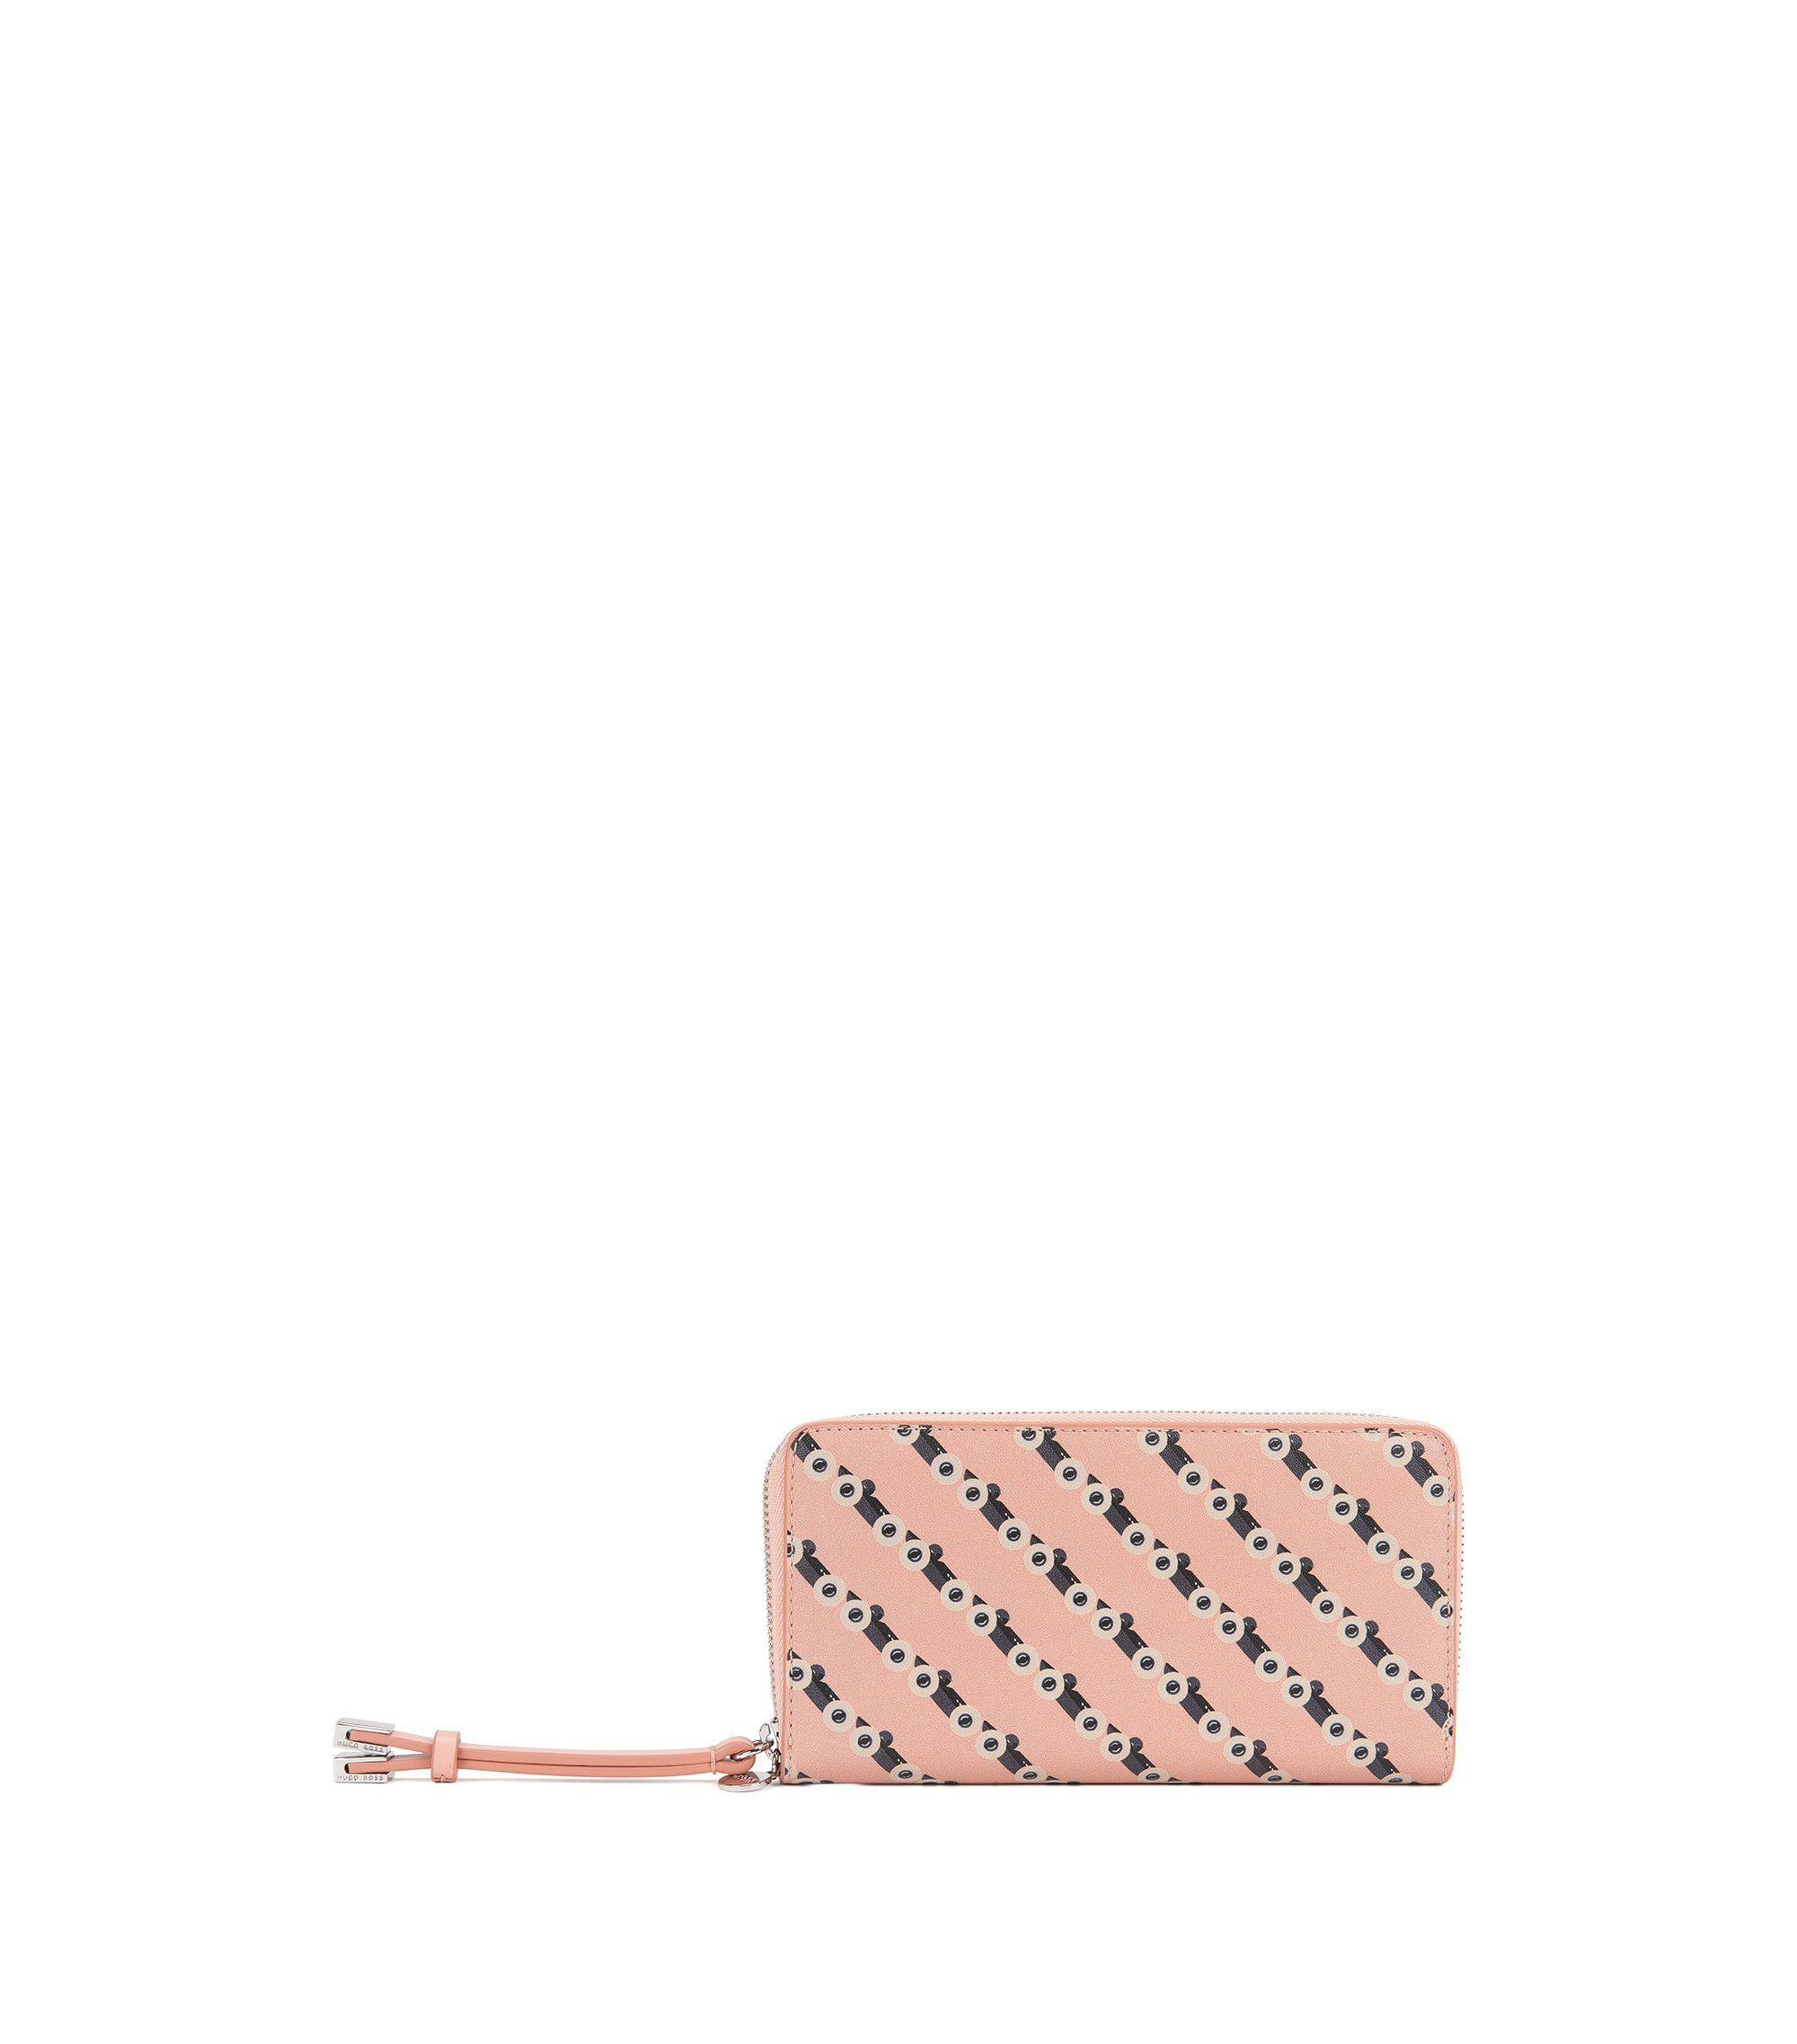 Leather ziparound wallet with race car motif, light pink